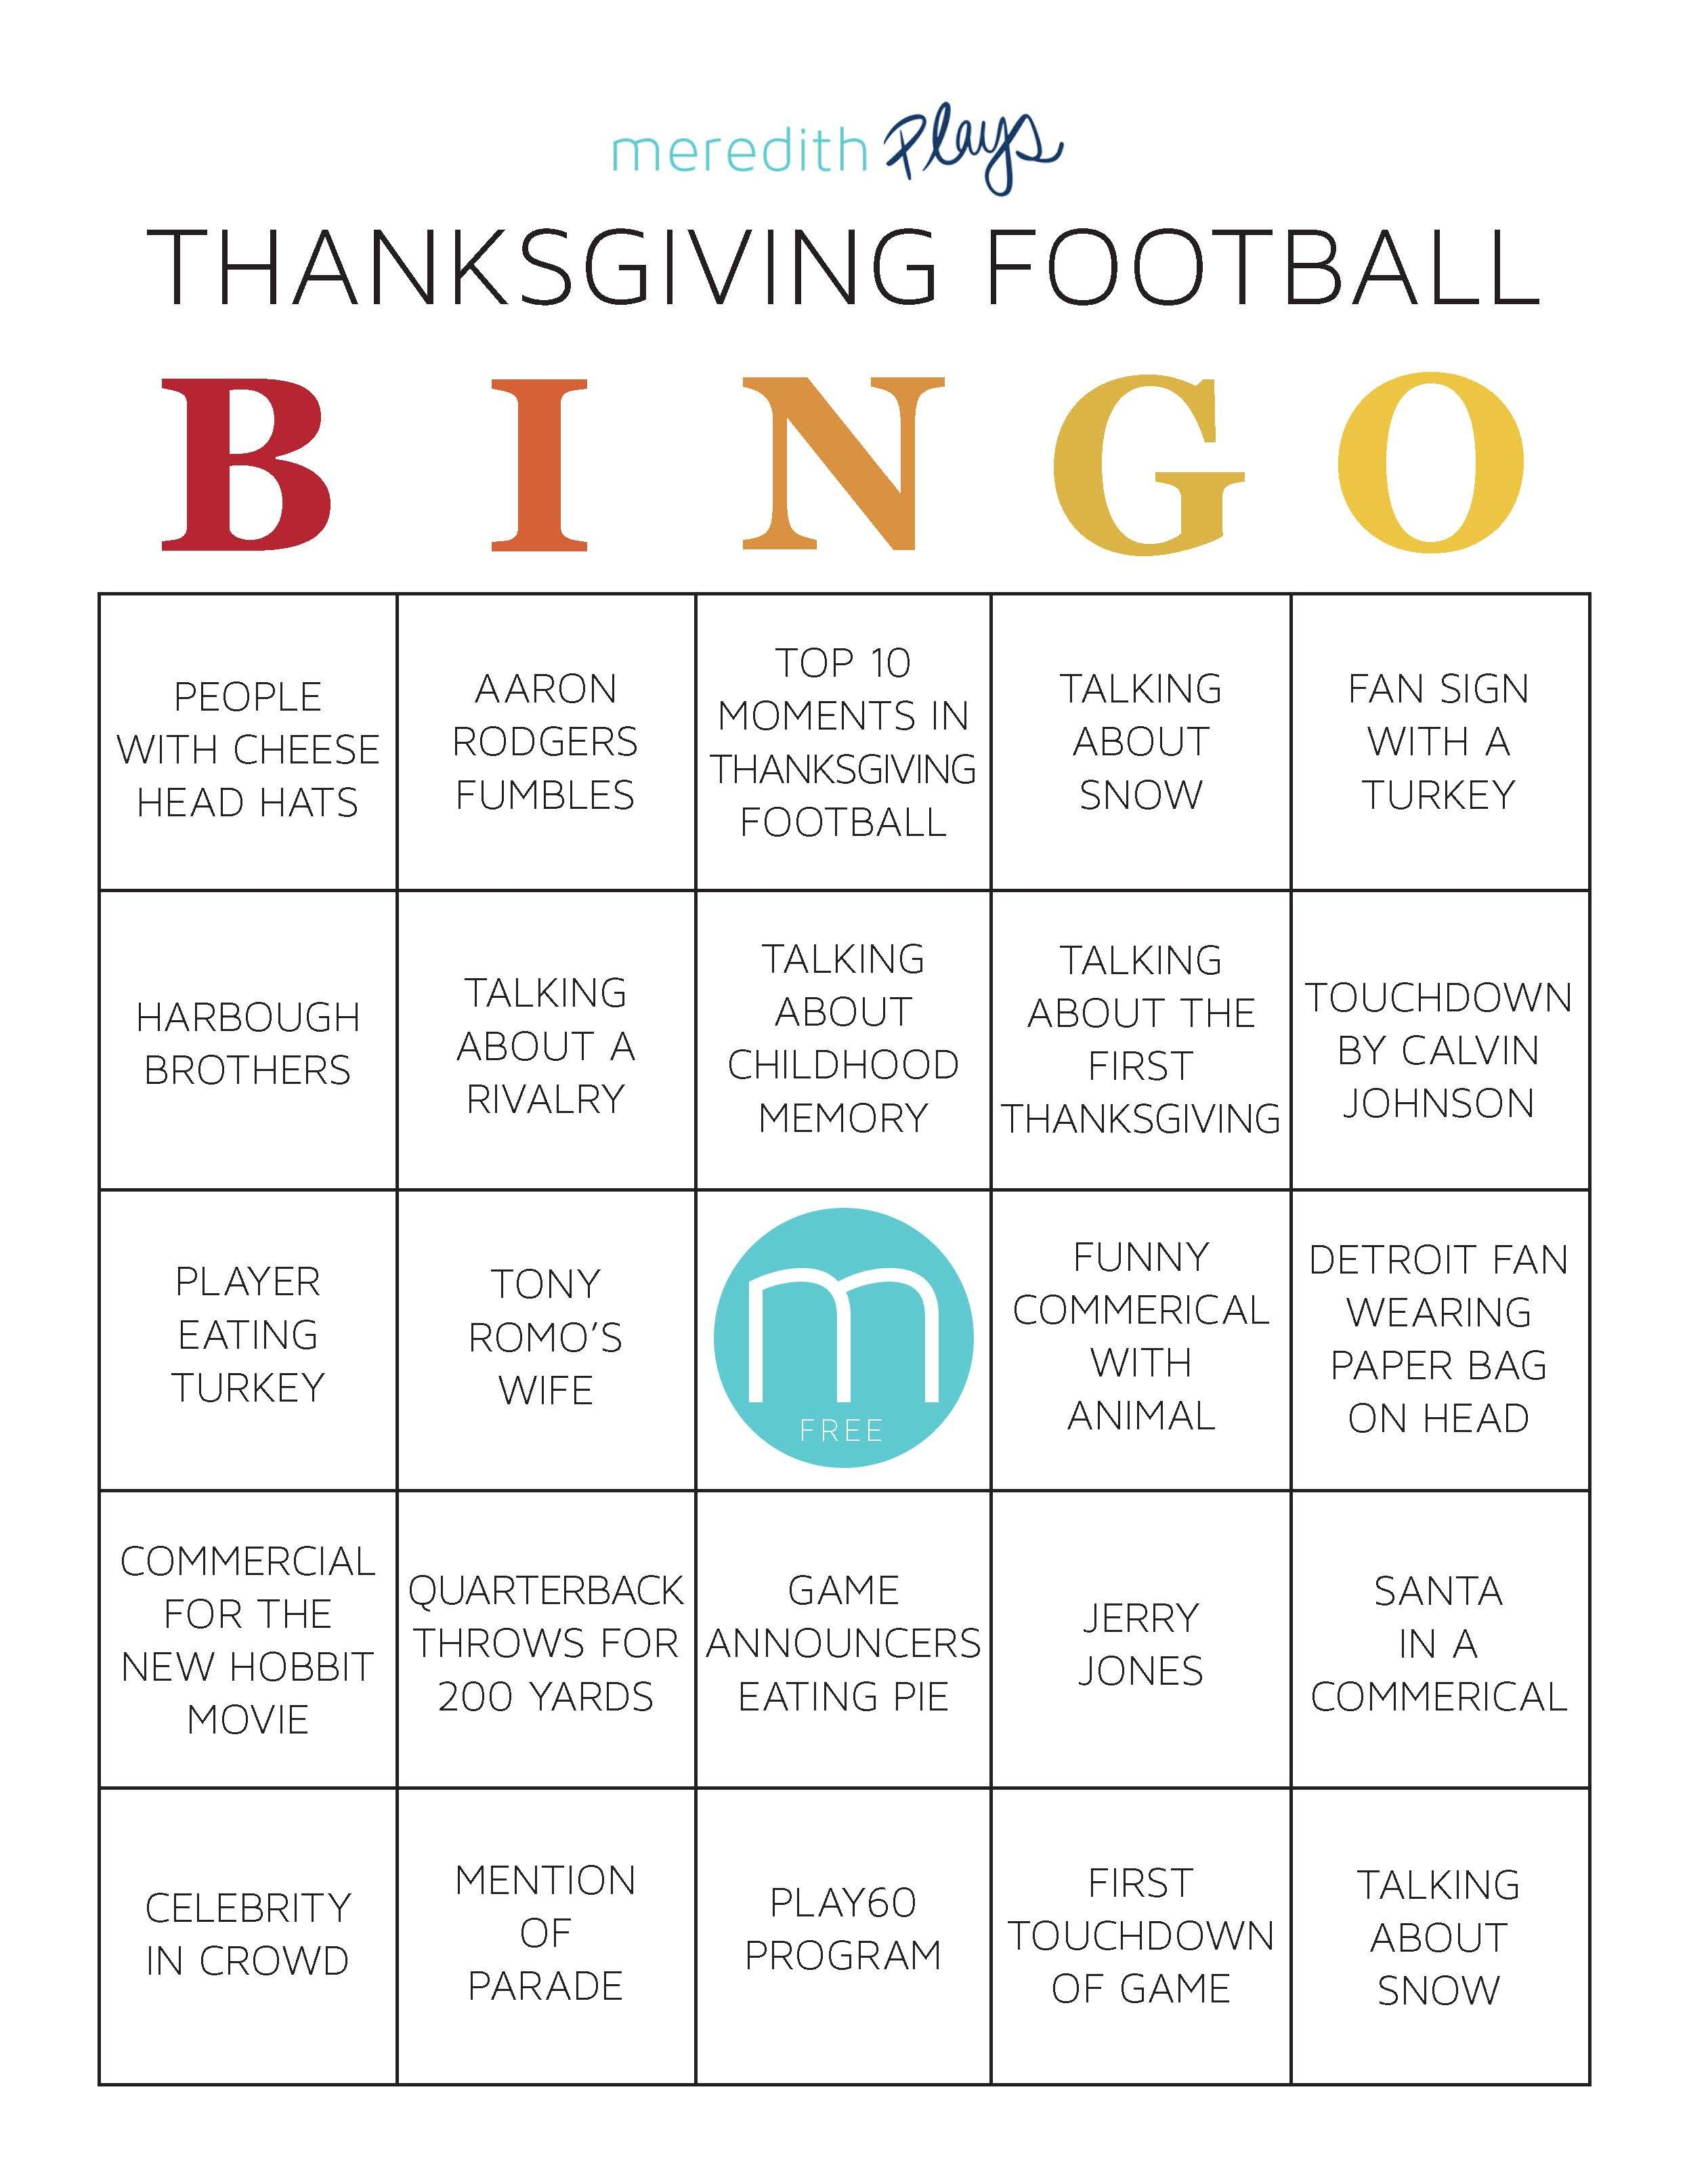 Print Out This Series Of Bingo Cards To Get Everyone Interacting During The Big Game On